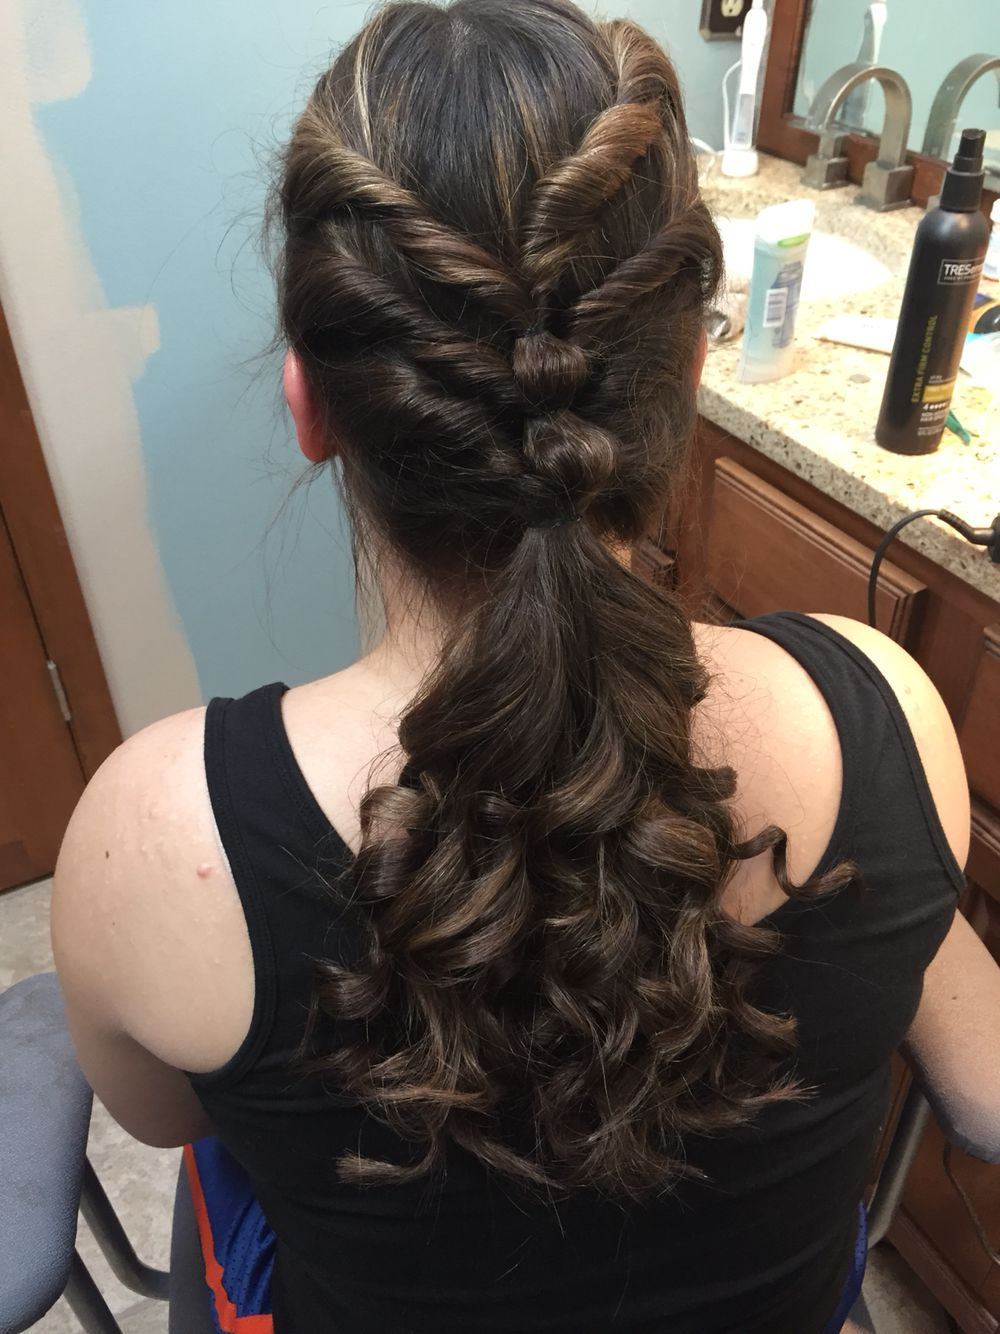 cute hairstyle for middle school dances! | hair | pinterest